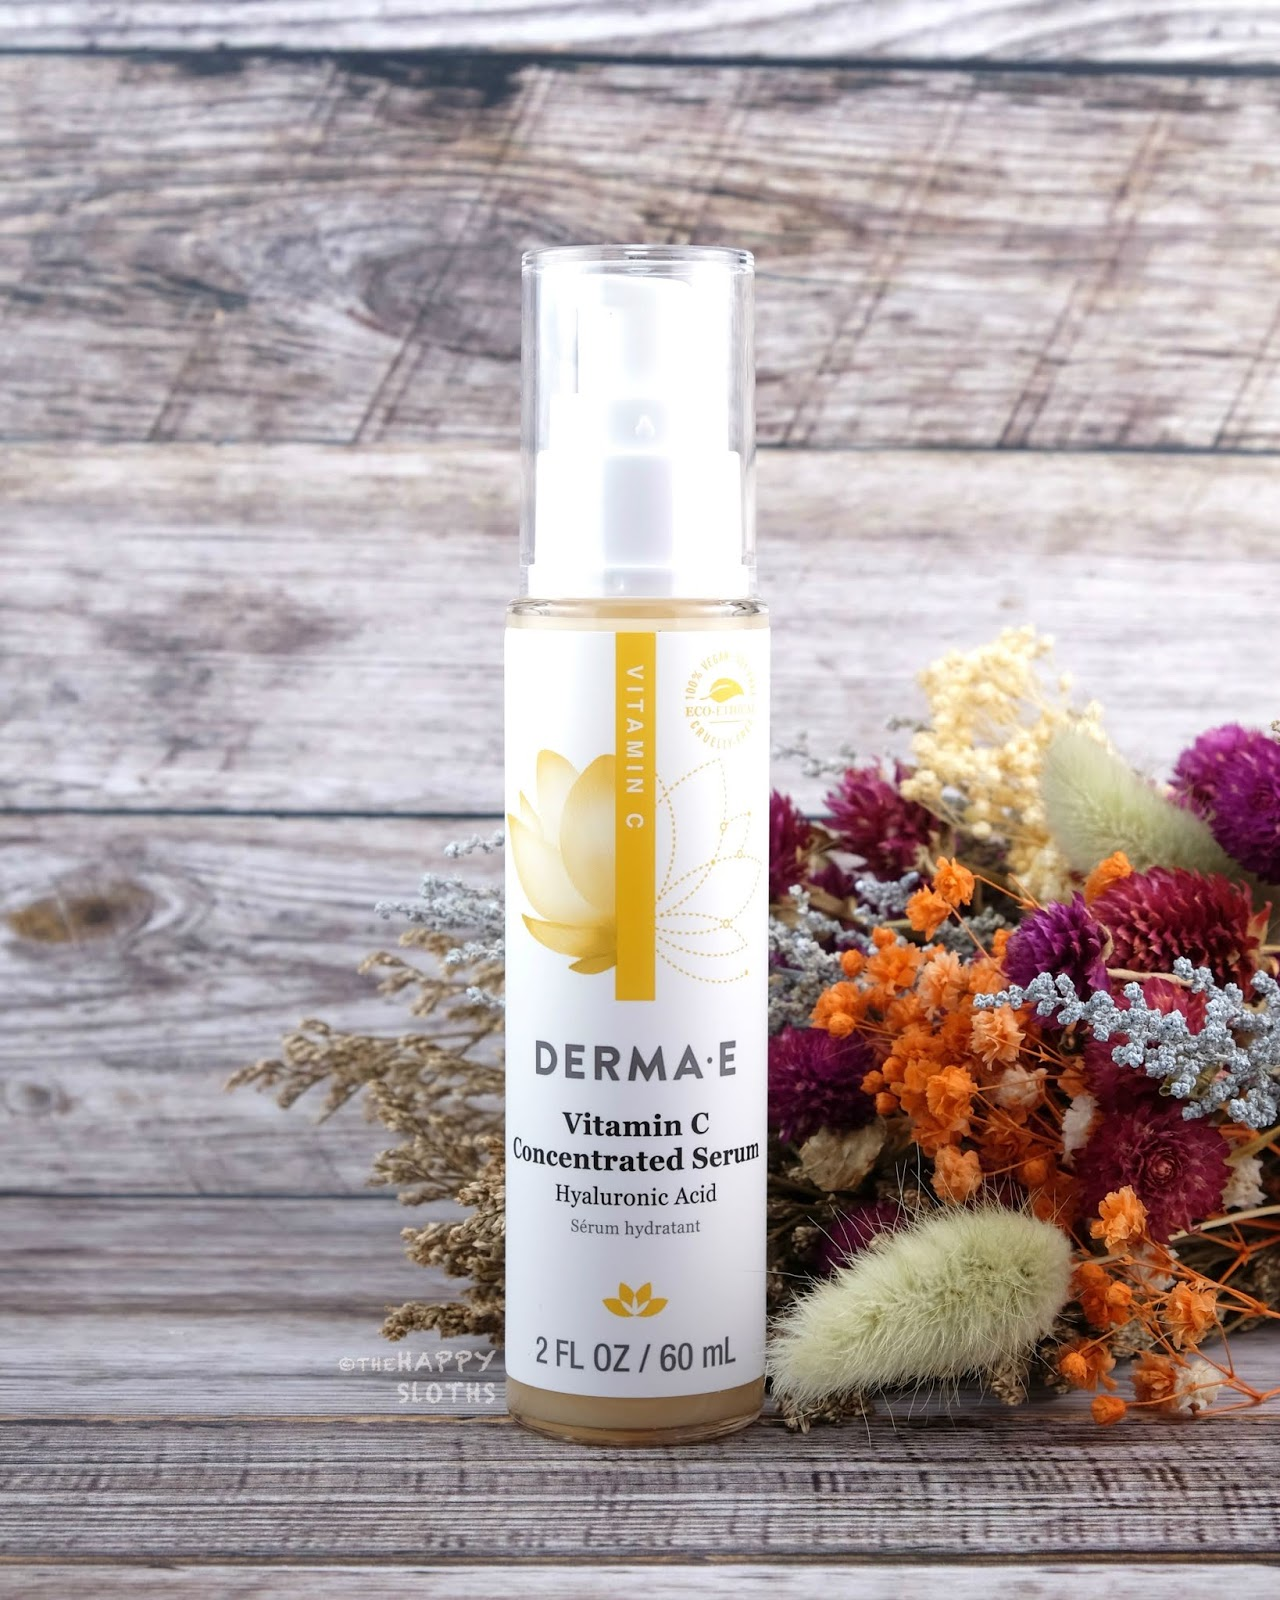 Derma E | Vitamin C Concentrated Serum: Review